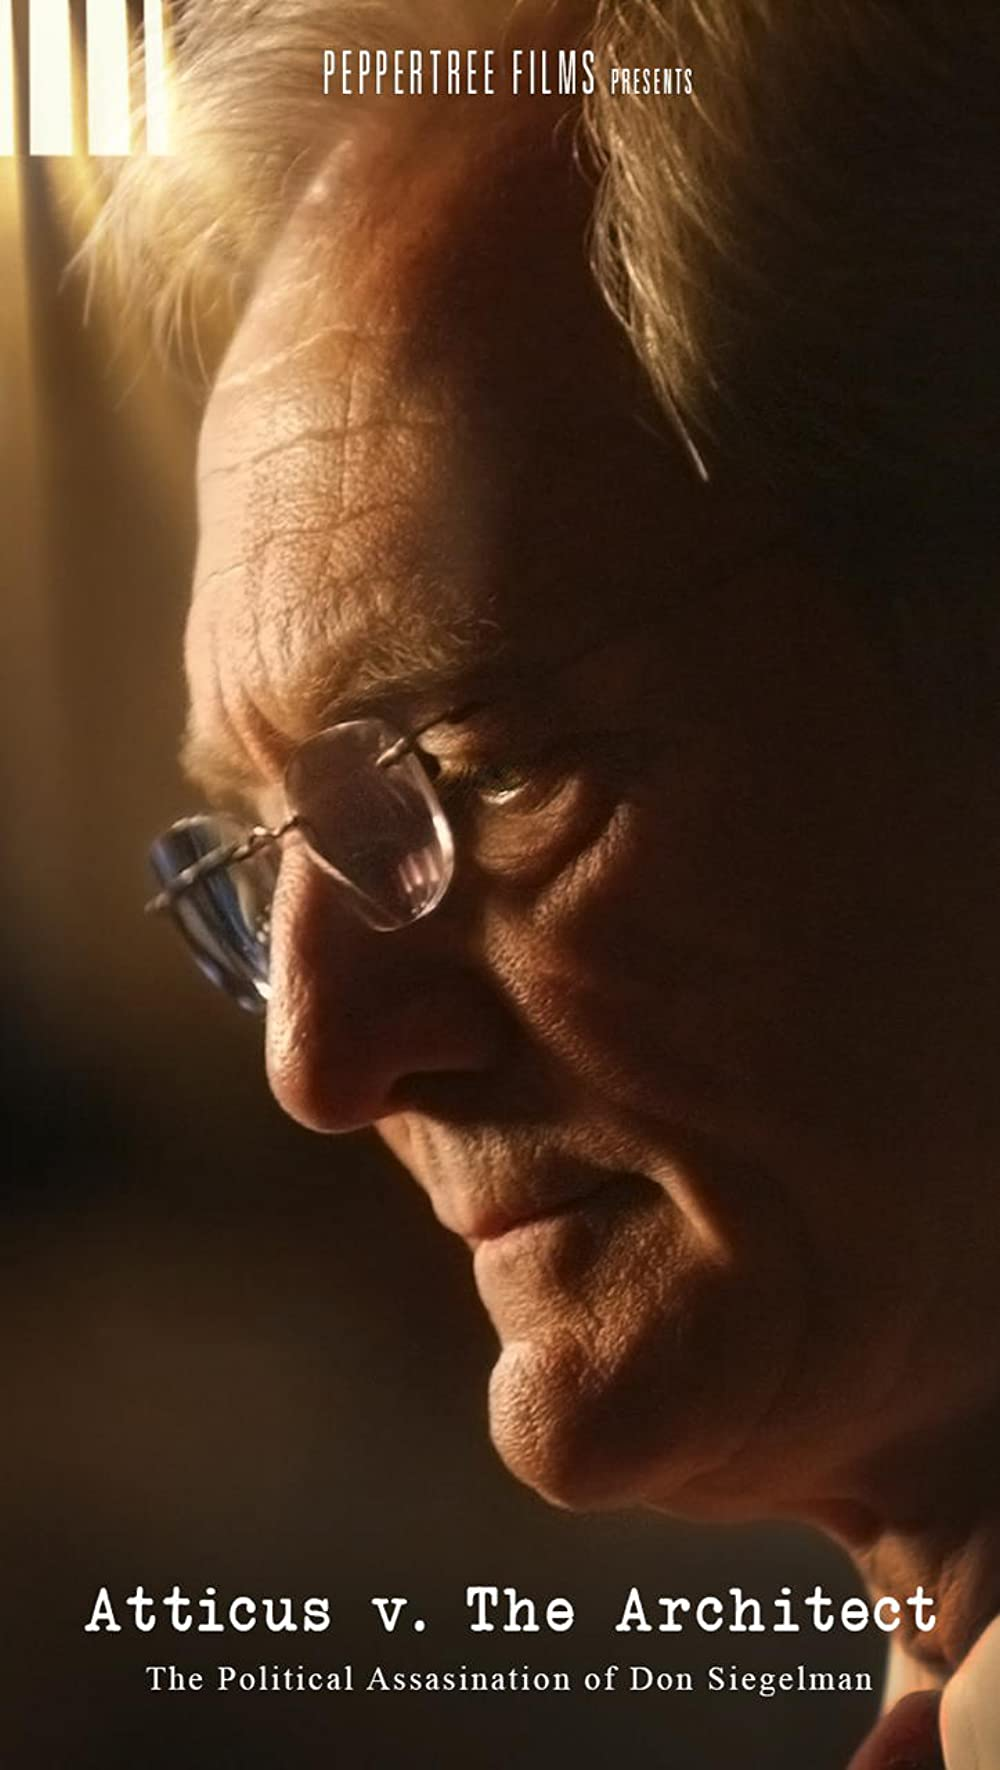 Watch Atticus v. The Architect: The Political Assassination of Don Siegelman Online